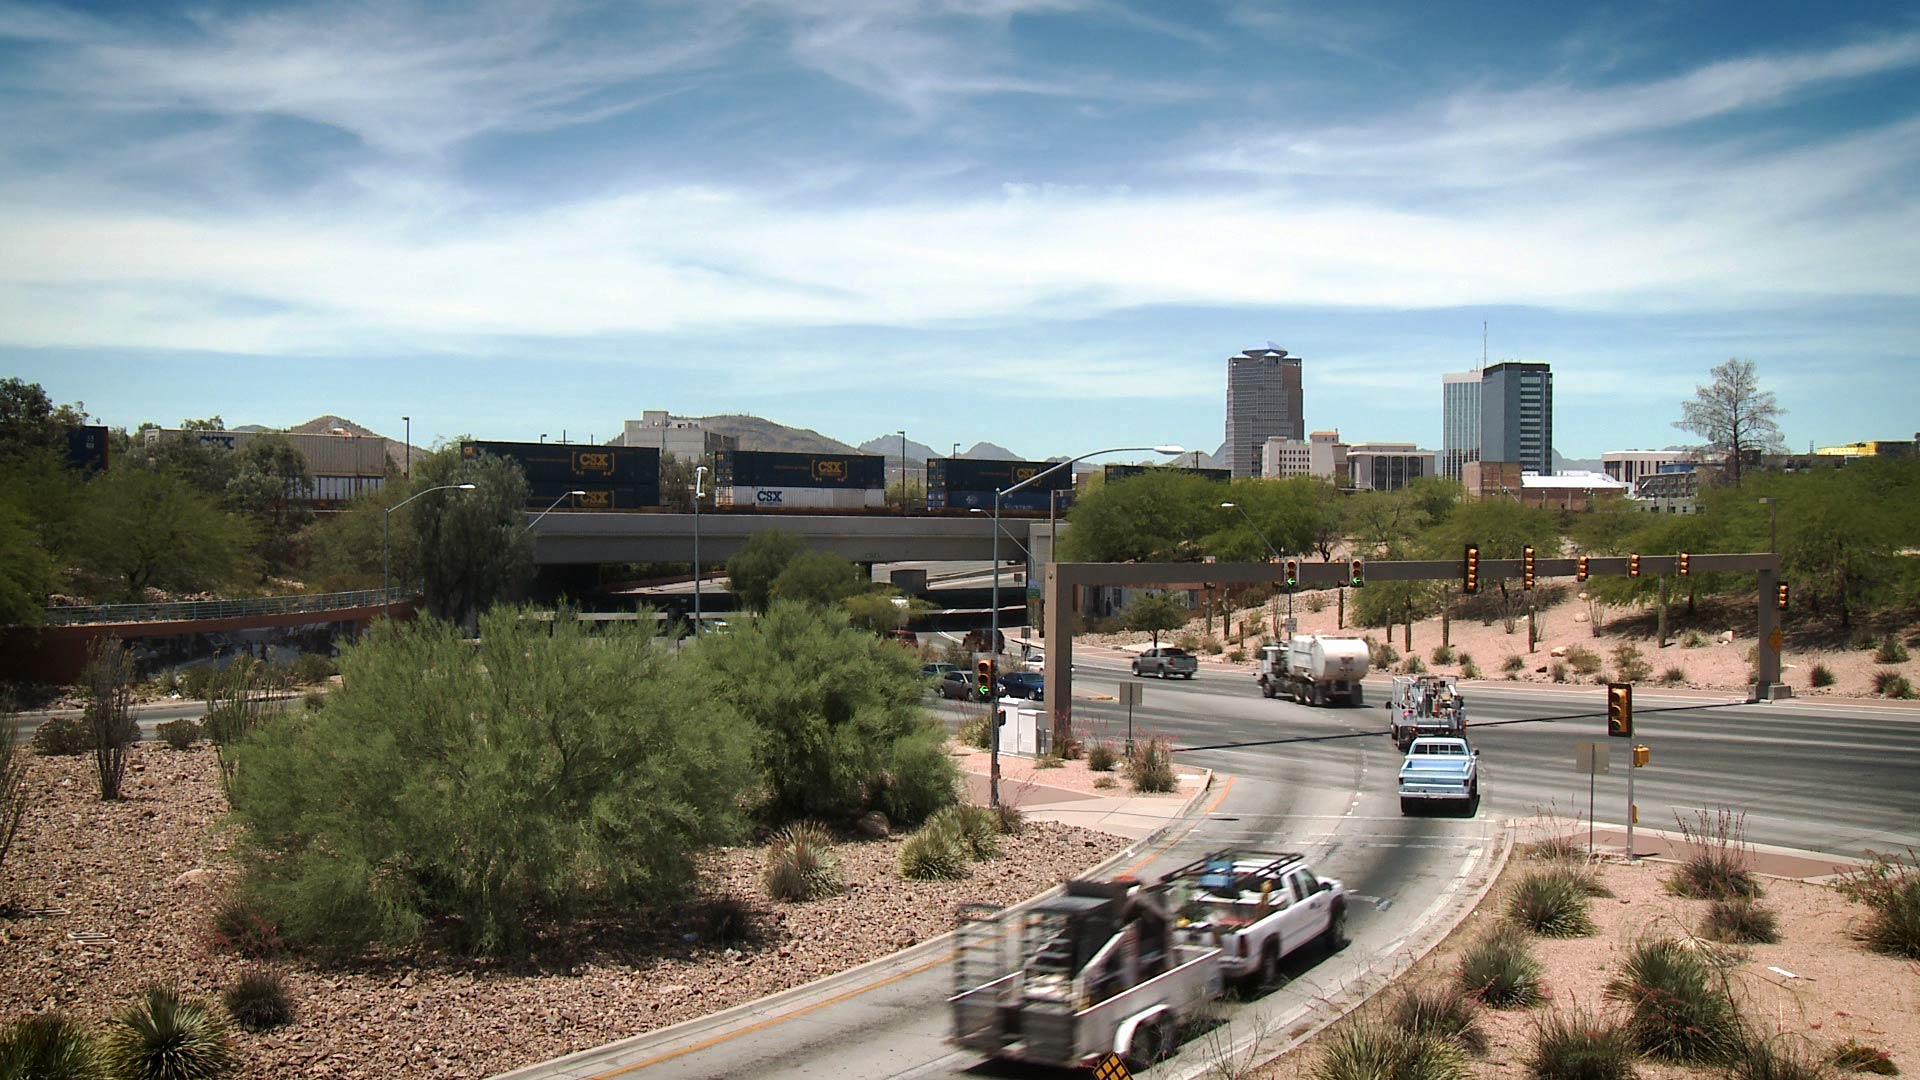 Downtown Tucson seen from the intersection of Barraza Aviation Highway and East Broadway Boulevard.